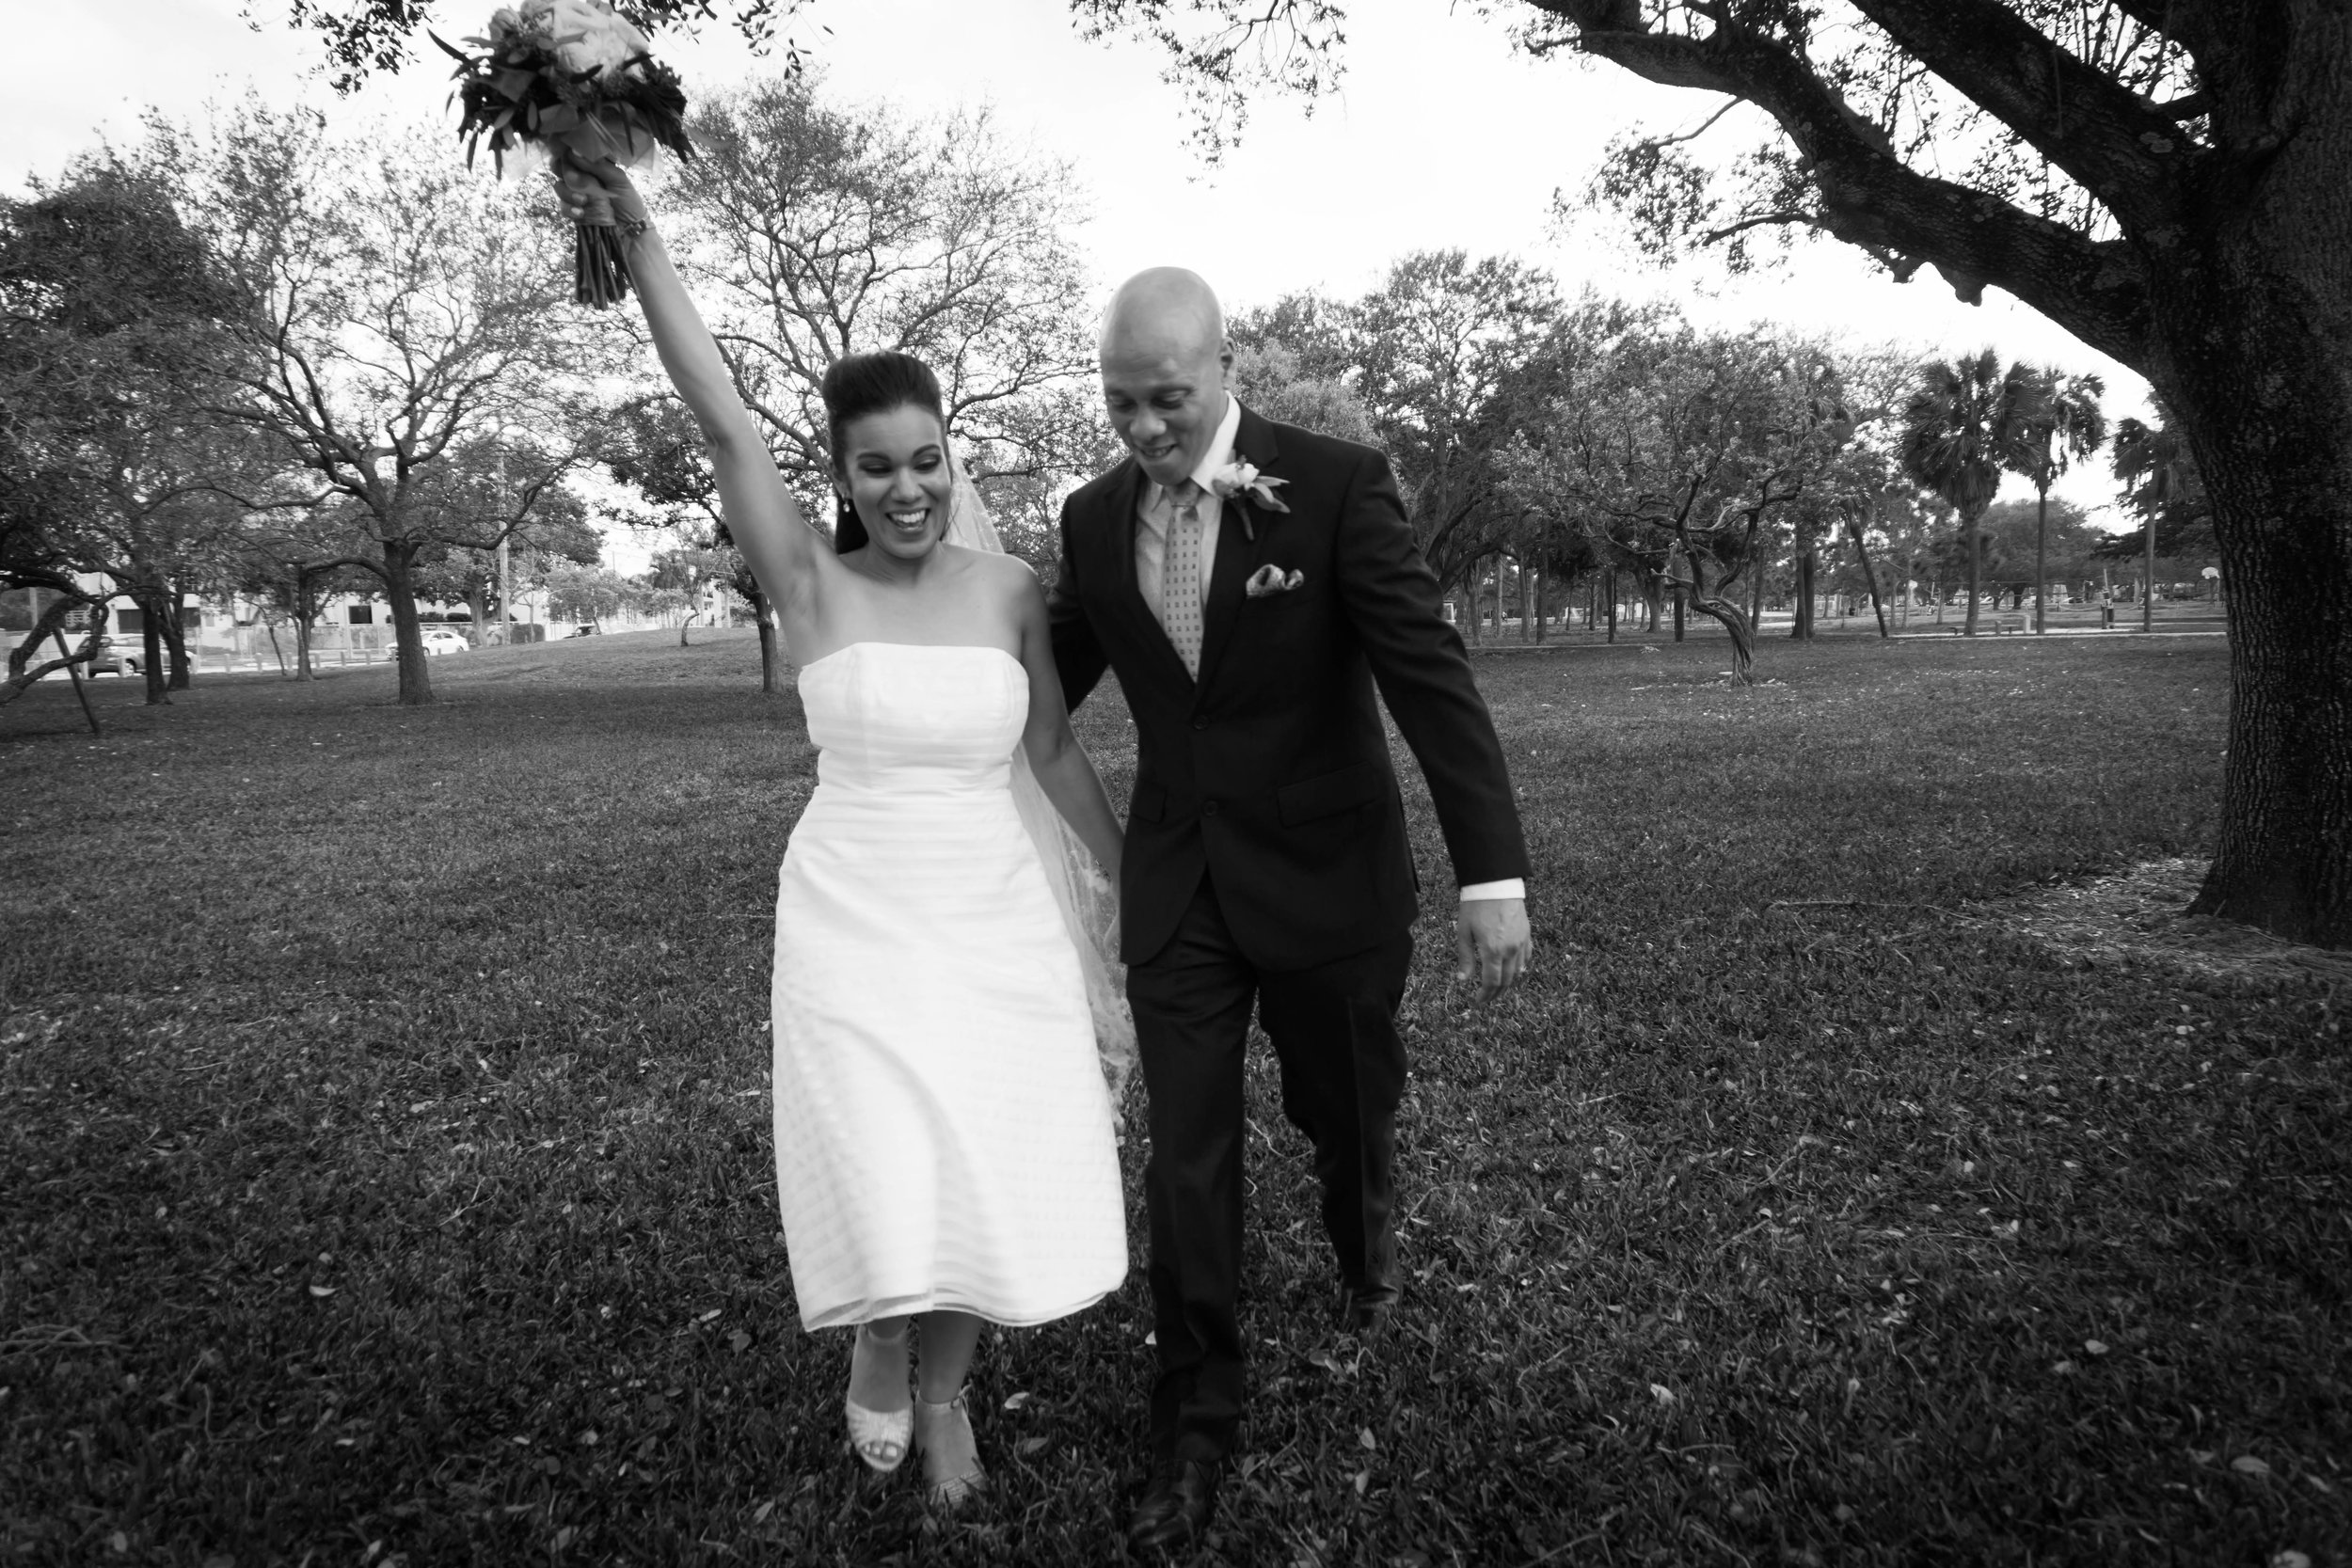 Tina_Mestre_Photography_Jas_Wedding_6.jpg